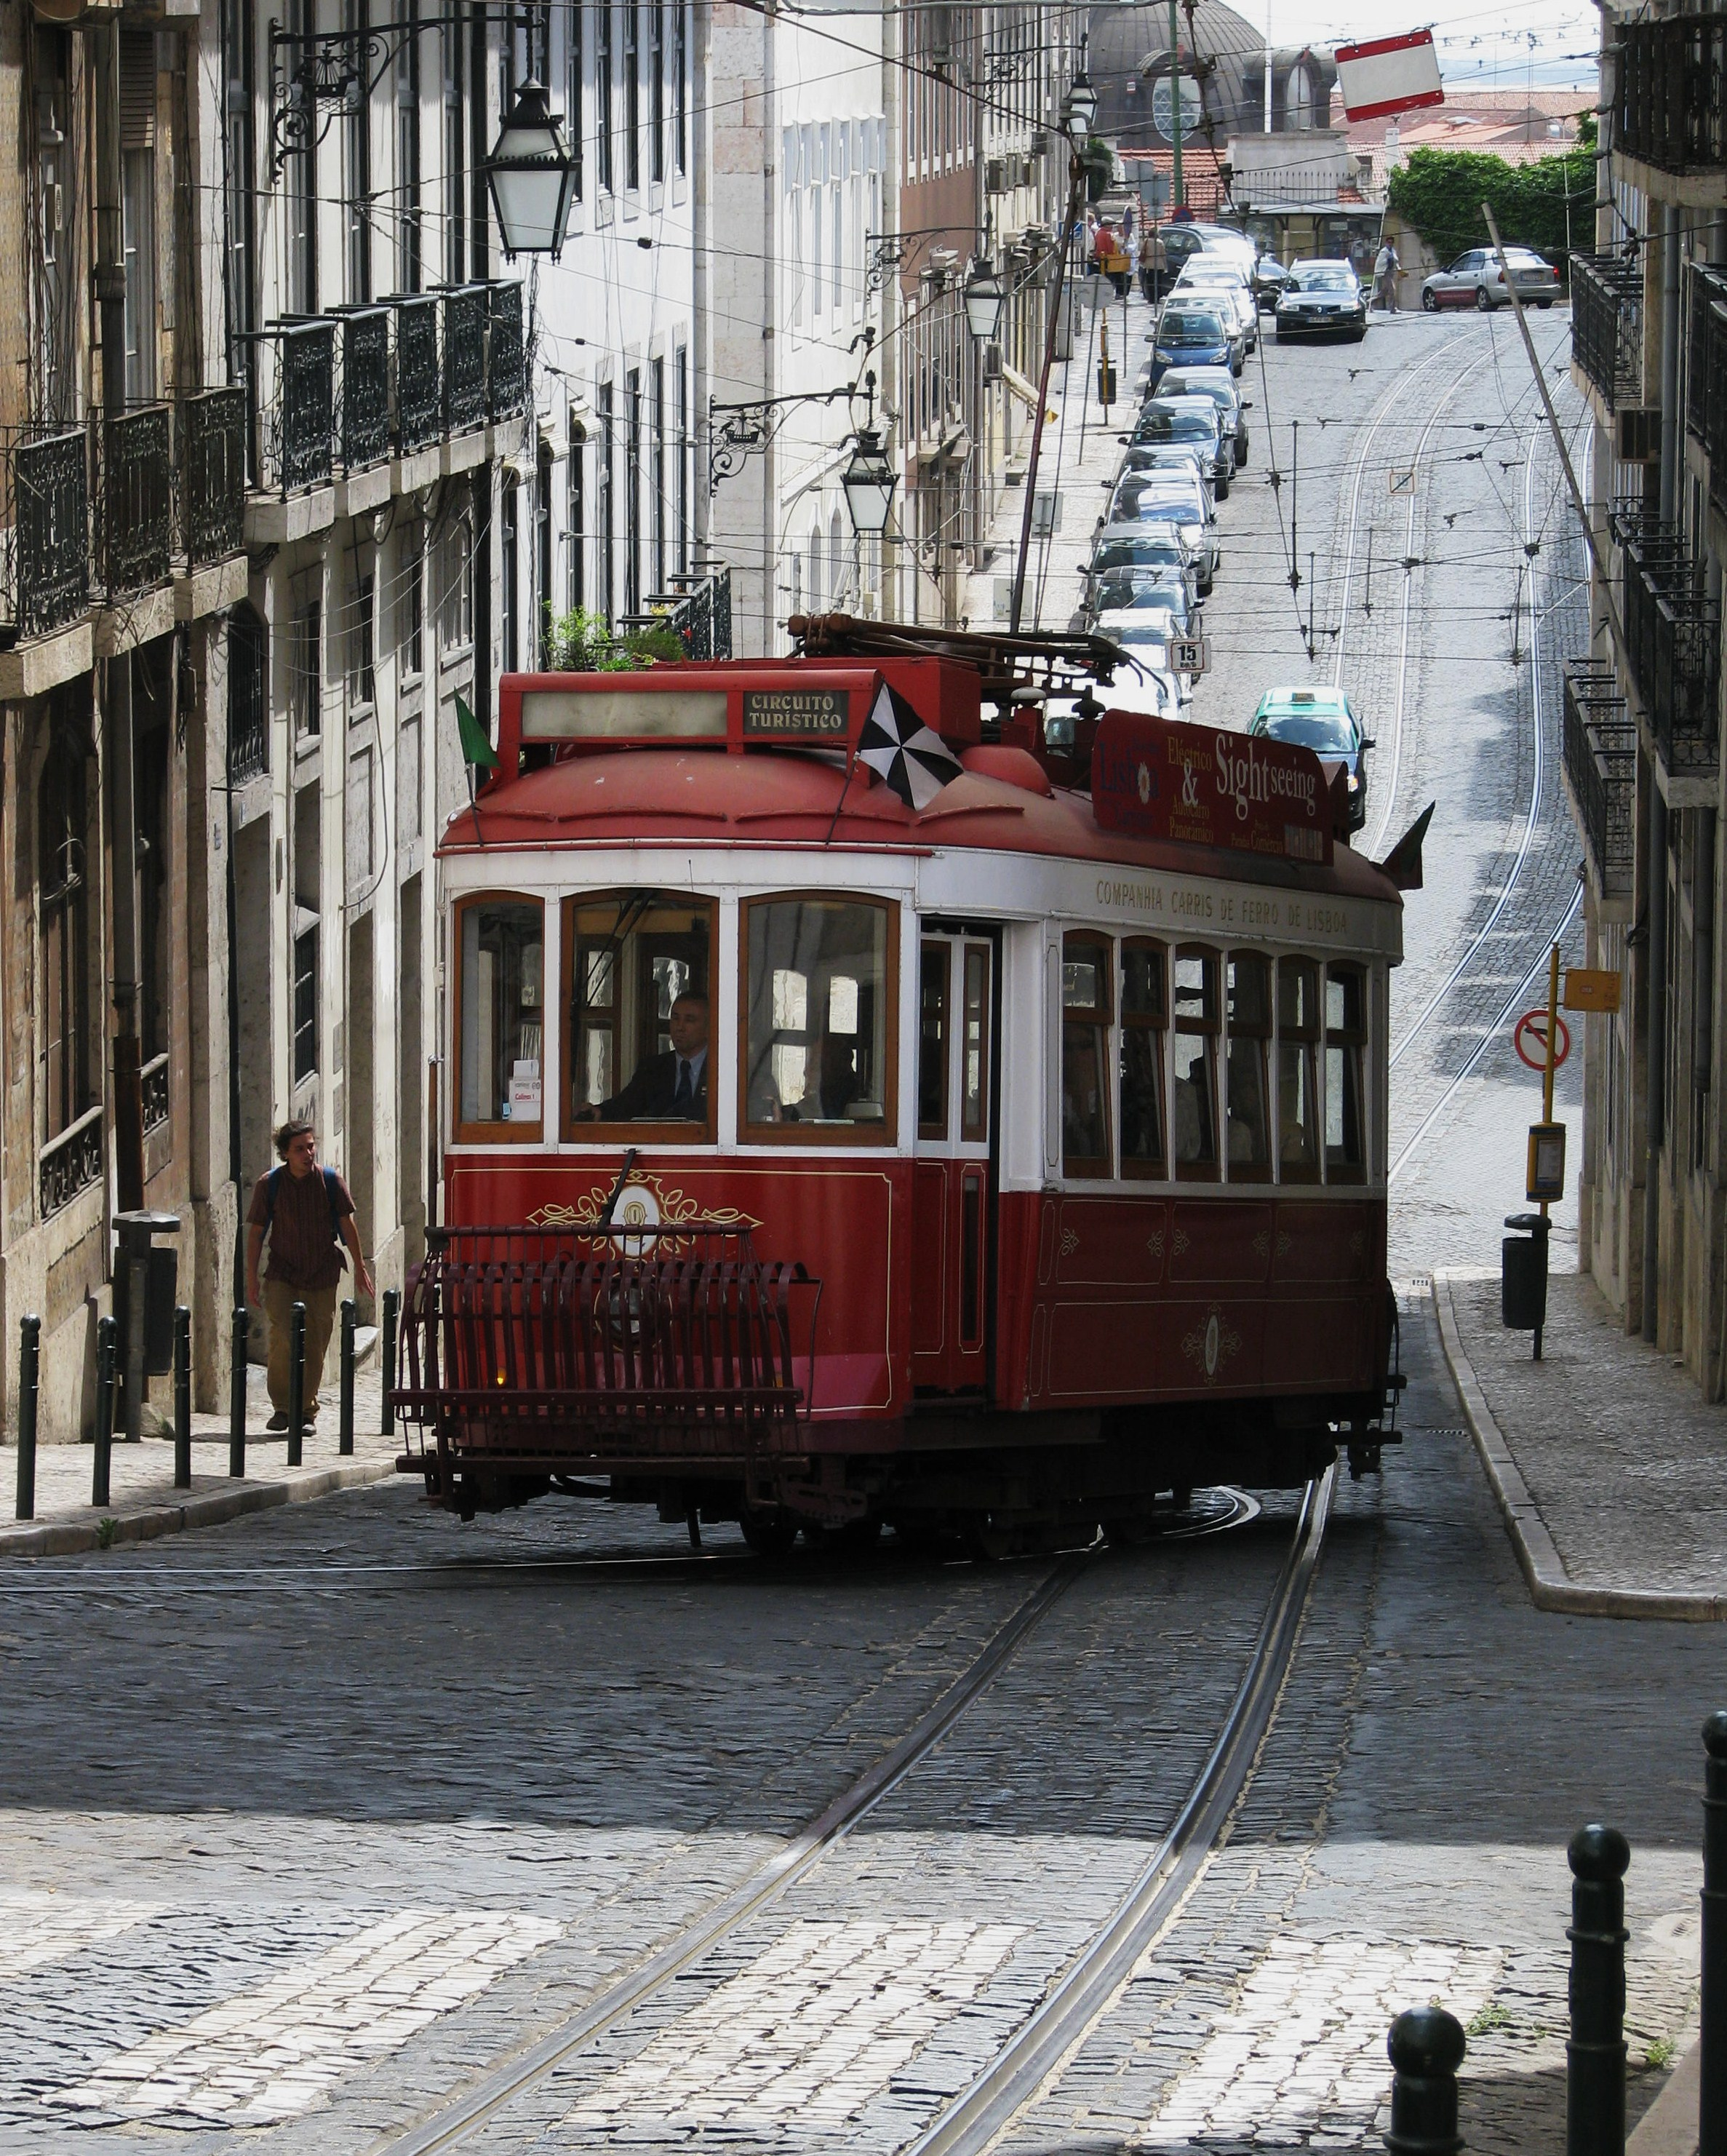 dateitram lisbon 6jpg � wikipedia